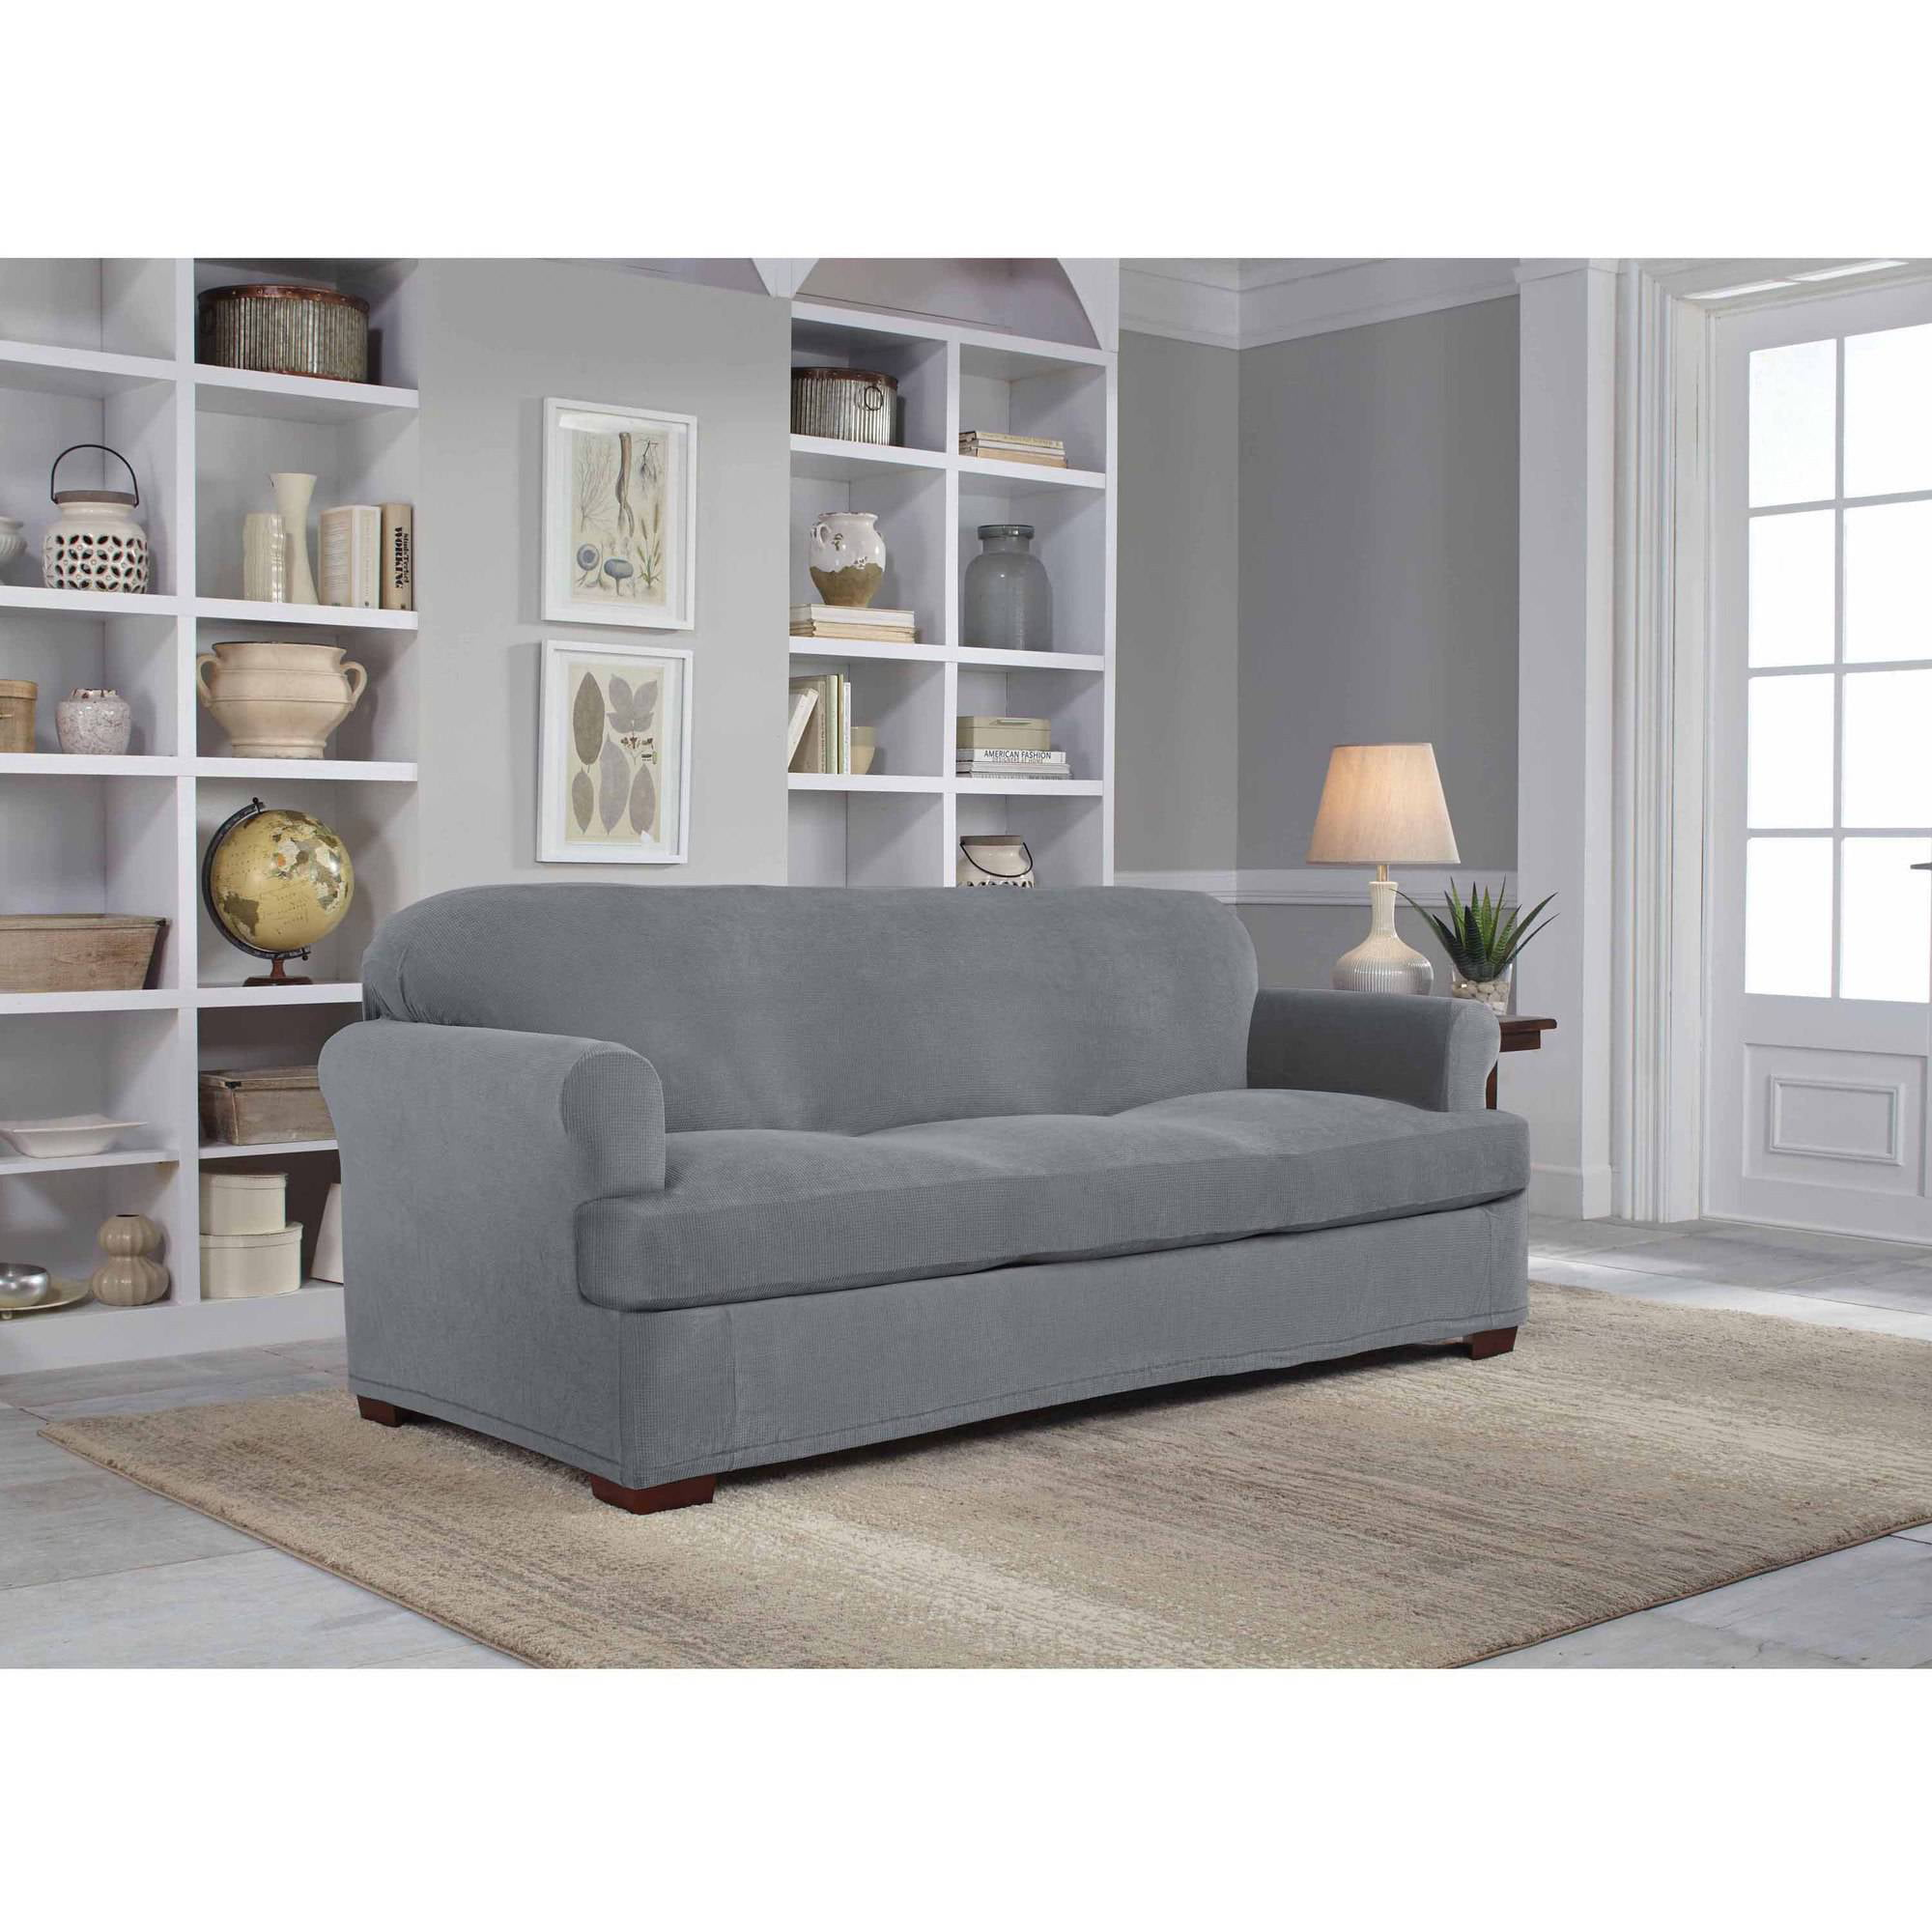 serta stretch grid slipcover sofa 2 piece t cushion walmart com rh walmart com gray linen sofa slipcover gray sofa slipcover walmart